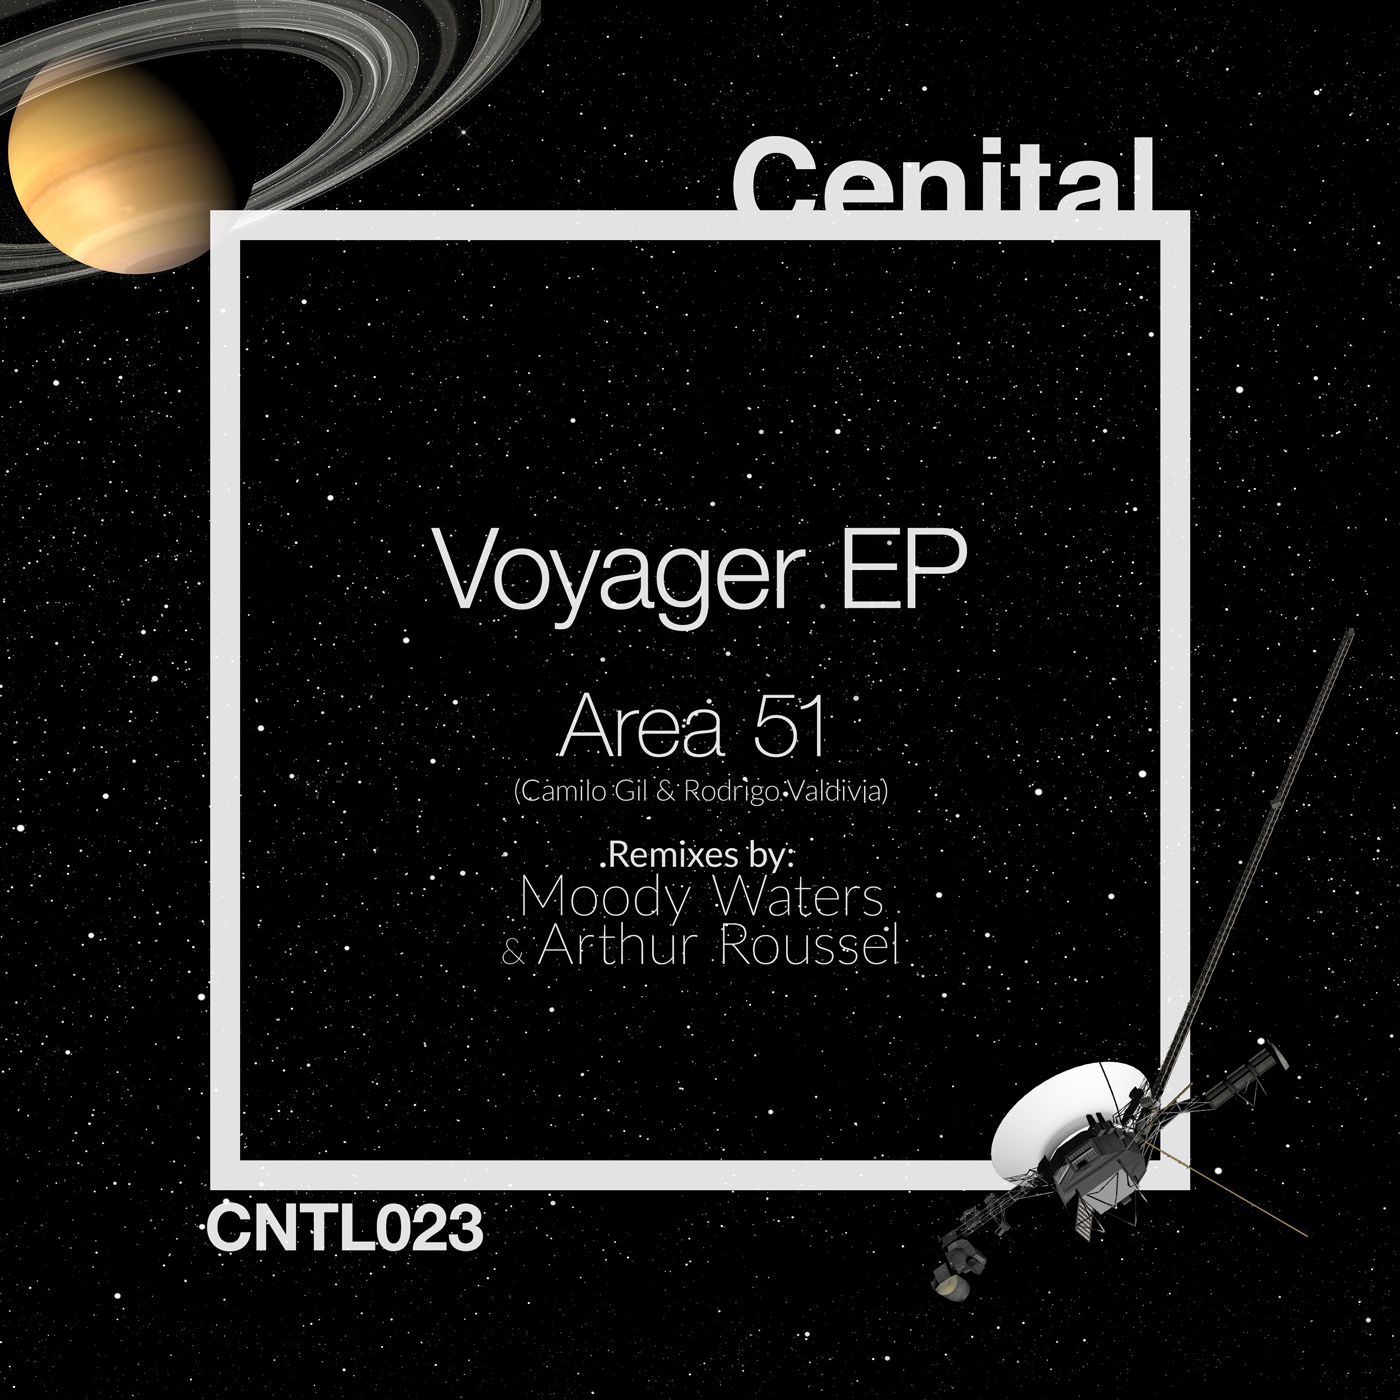 Area 51 Voyager EP